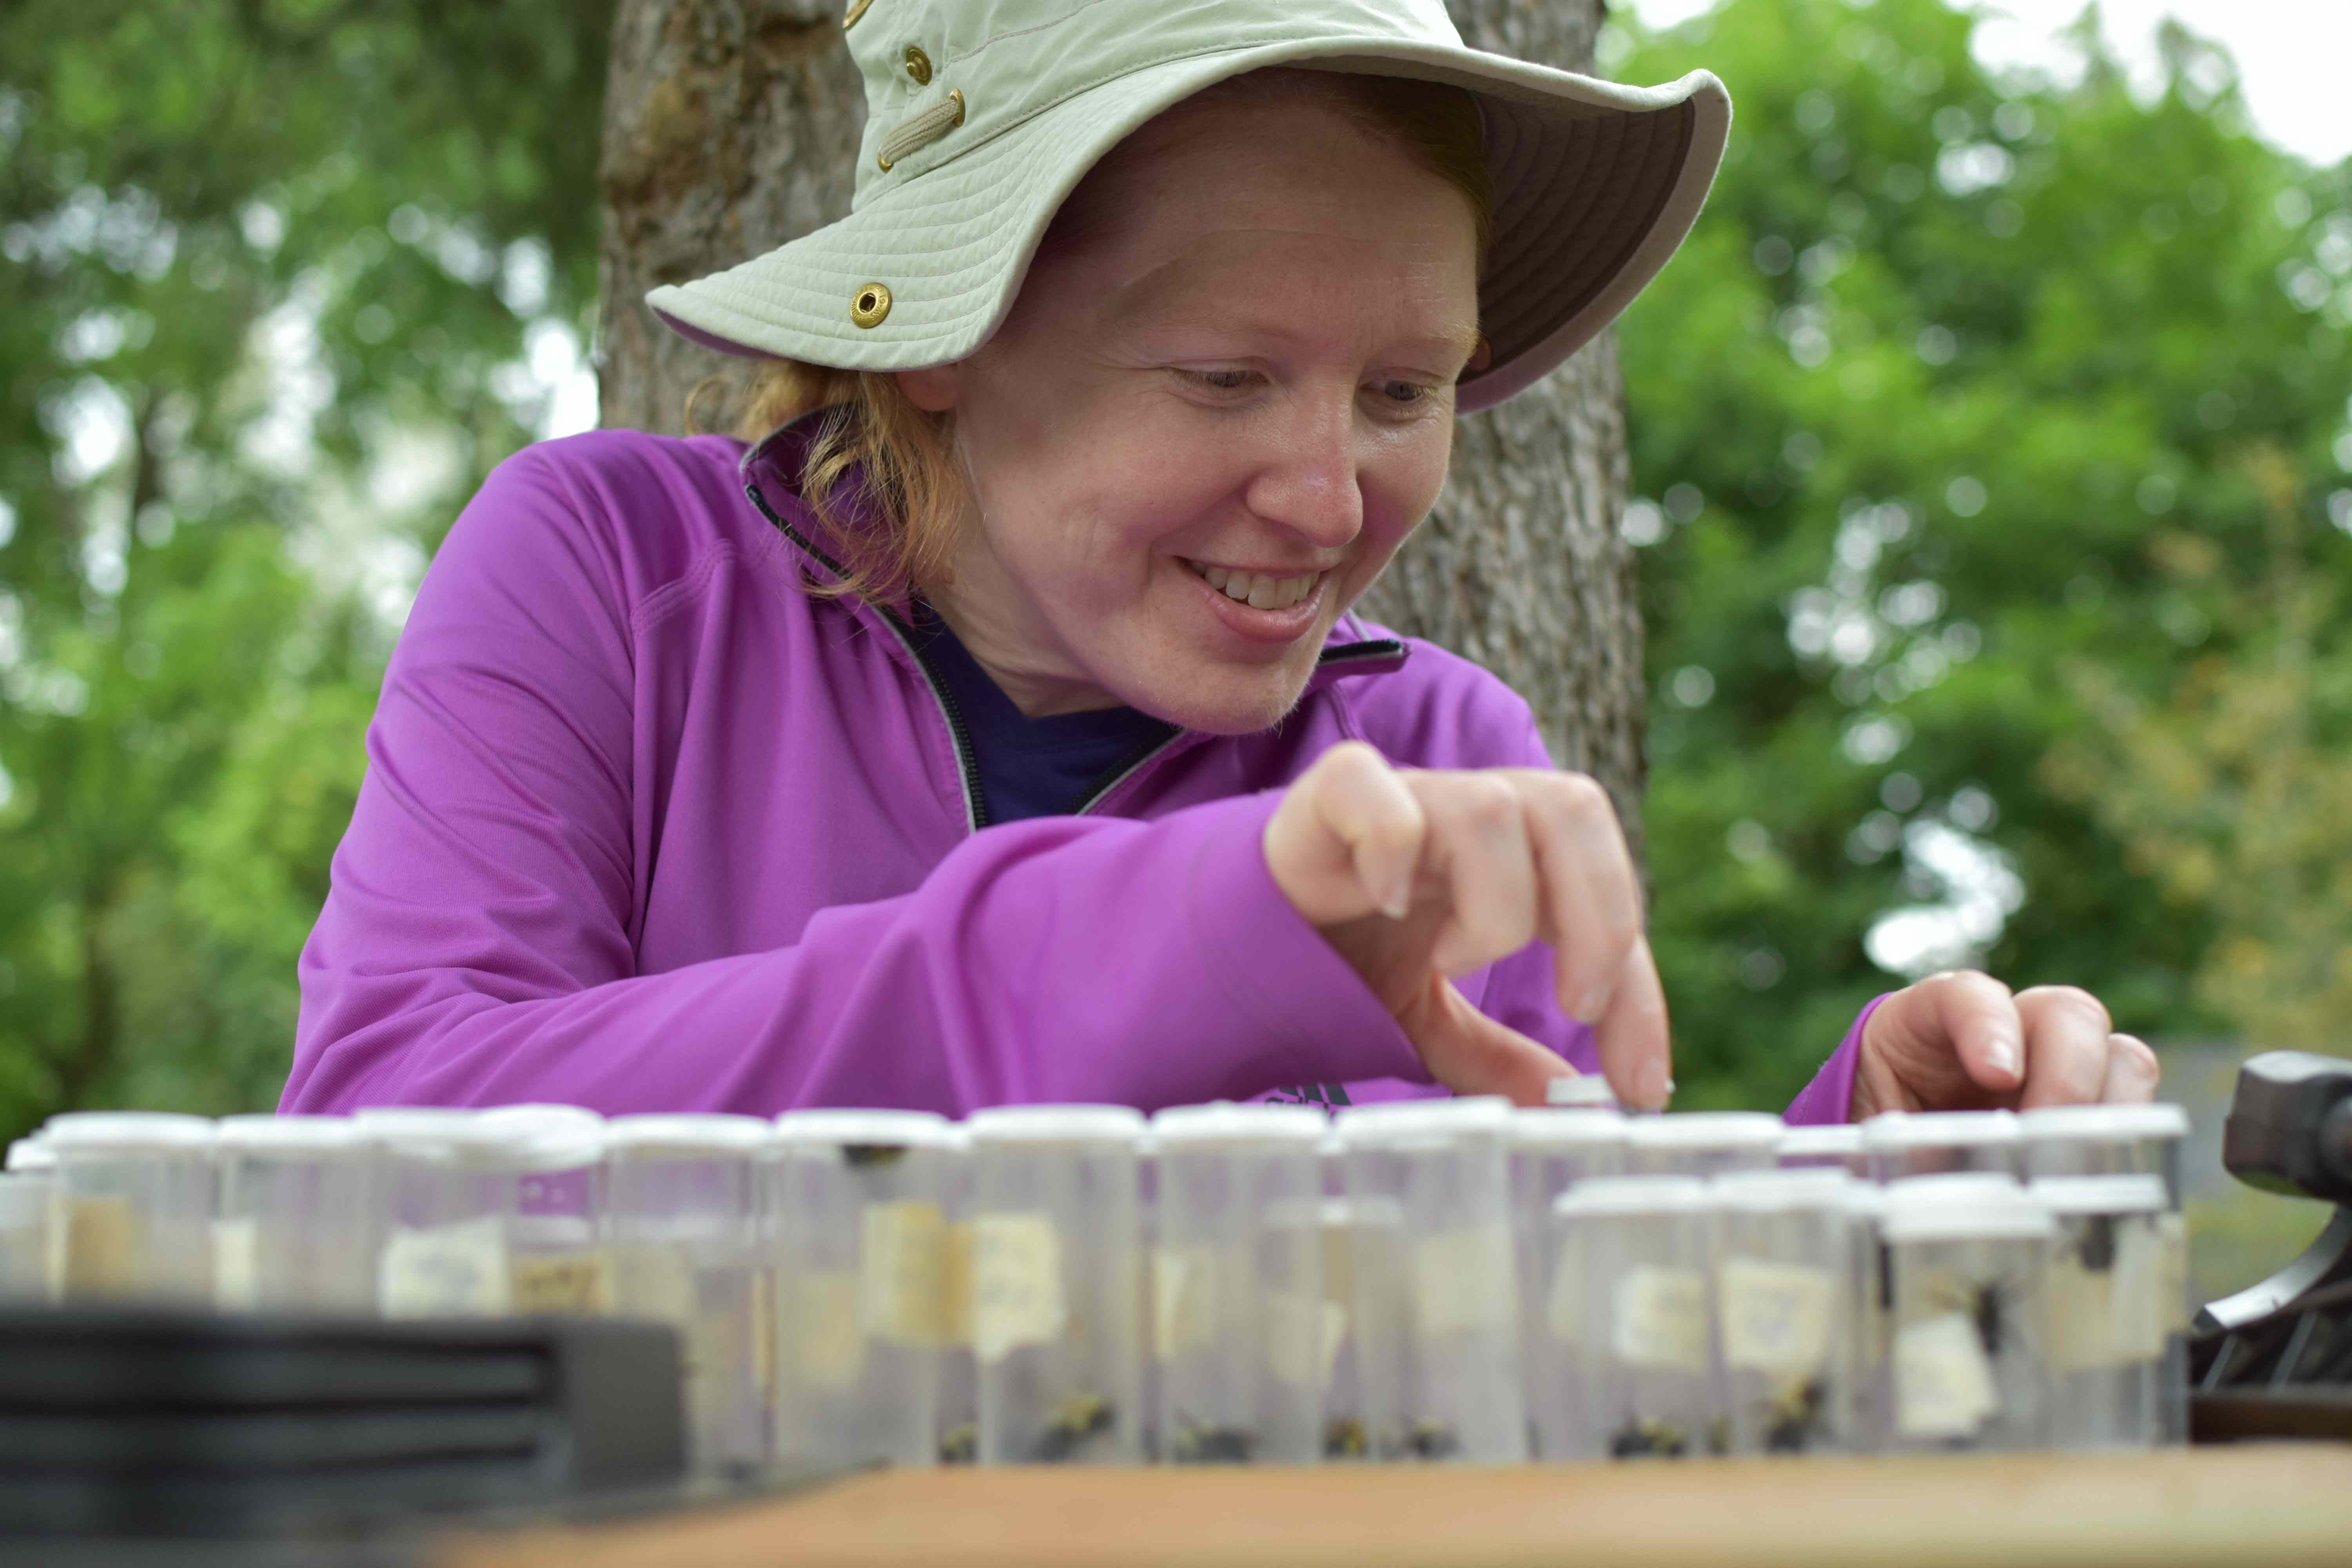 Victoria looking at bumble bees in plastic collection vials.